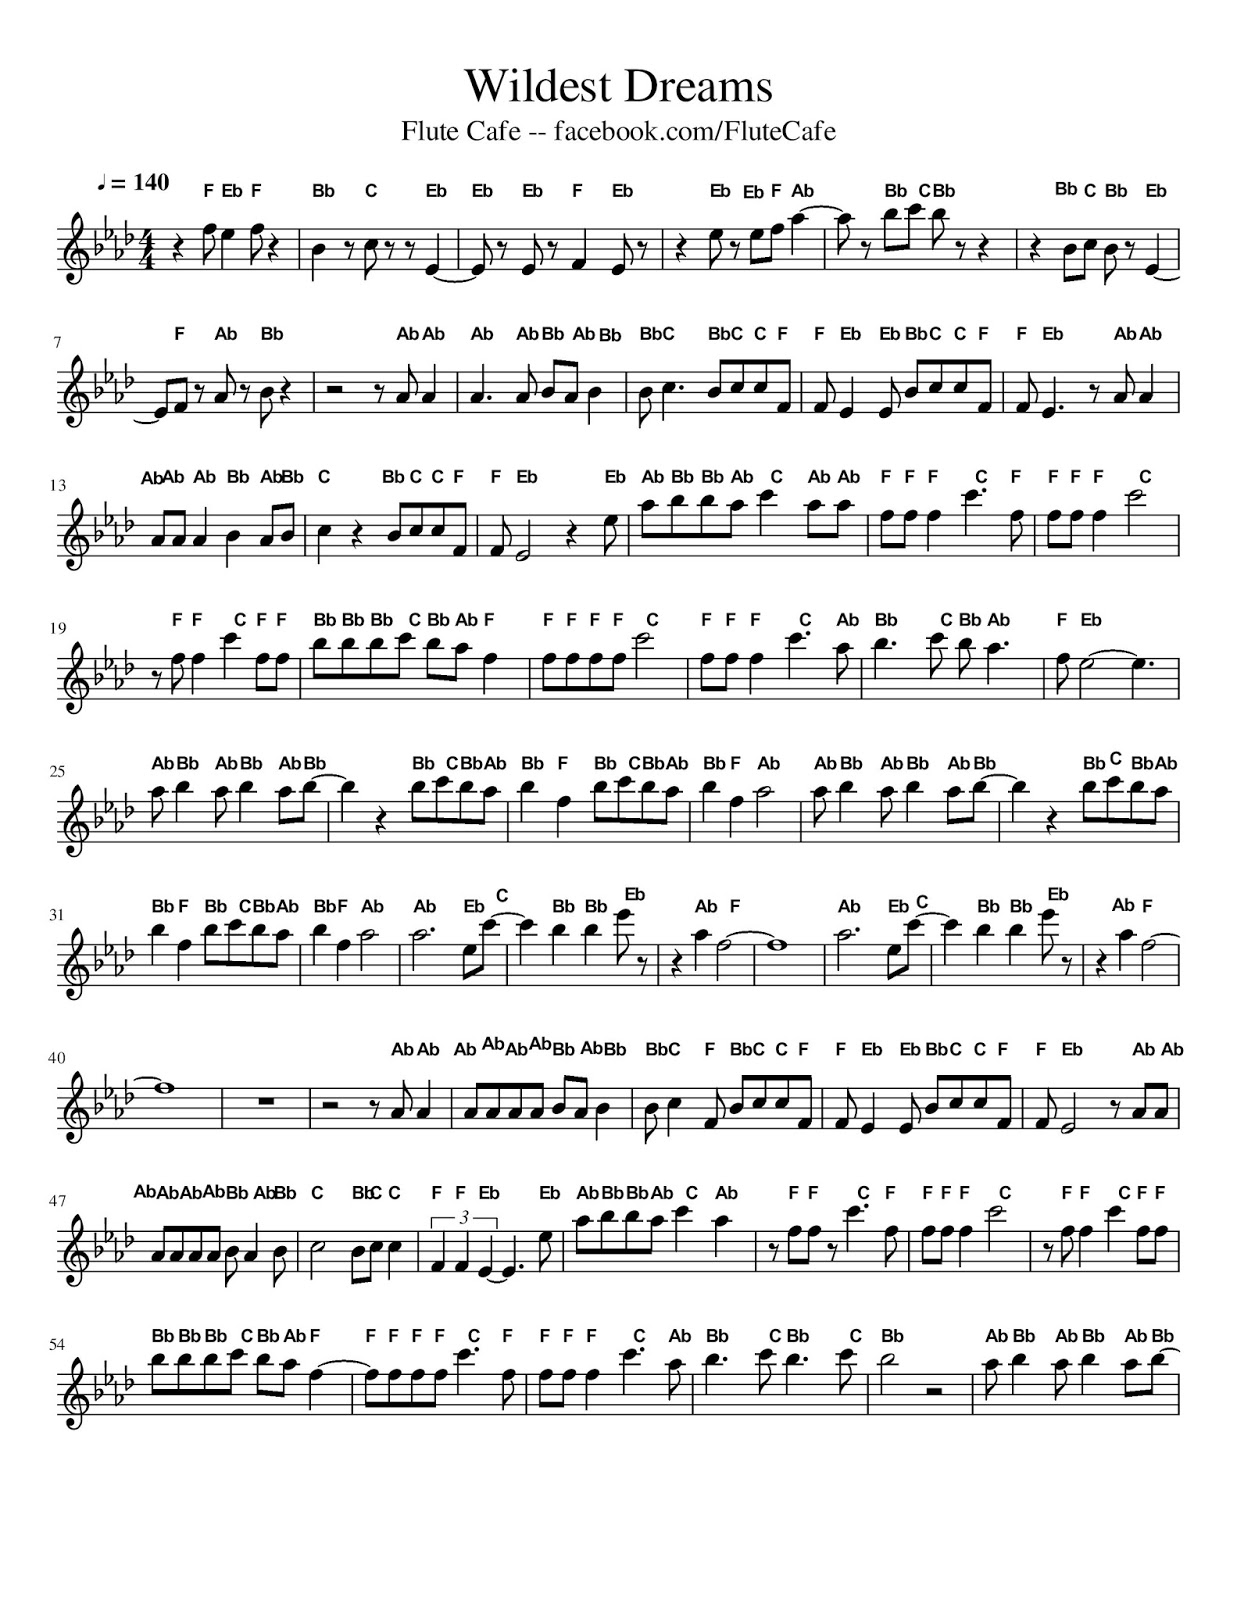 Flute Cafe Wildest Dreams By Taylor Swift Flute Sheet Music